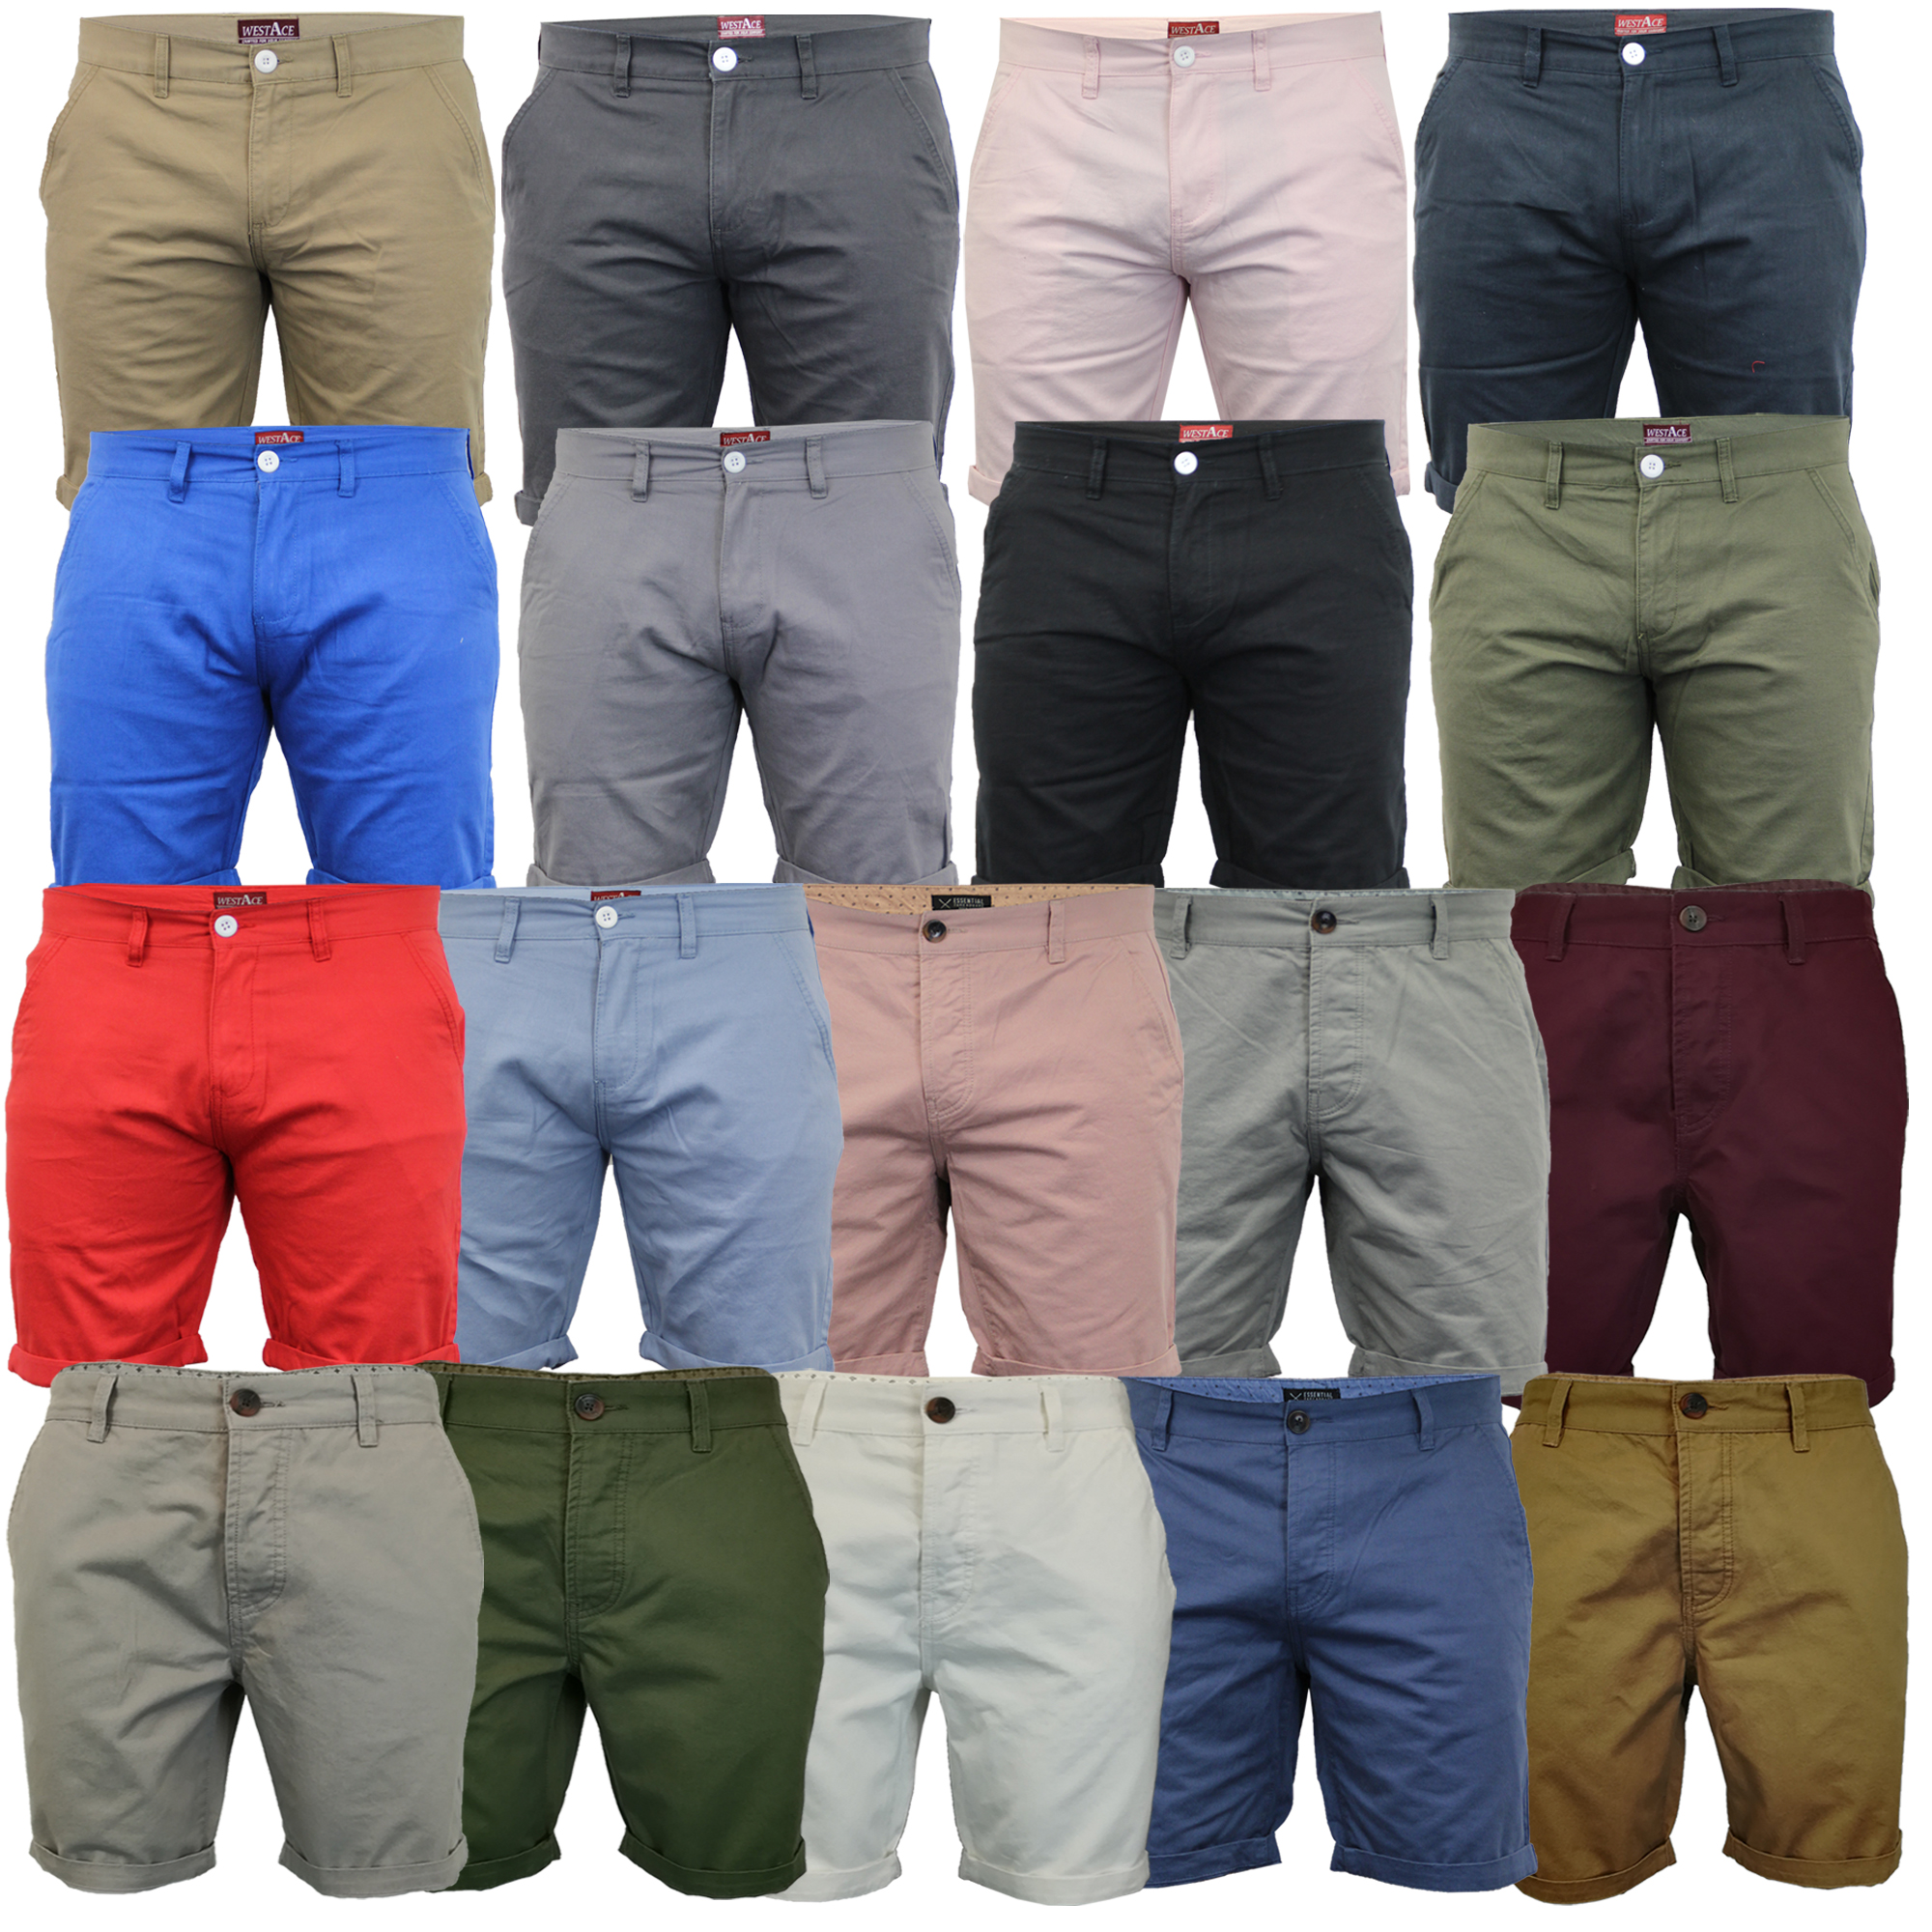 Mens-Chino-Shorts-Threadbare-Pants-Westace-Stallion-Knee-Length-Roll-Up-Summer thumbnail 4